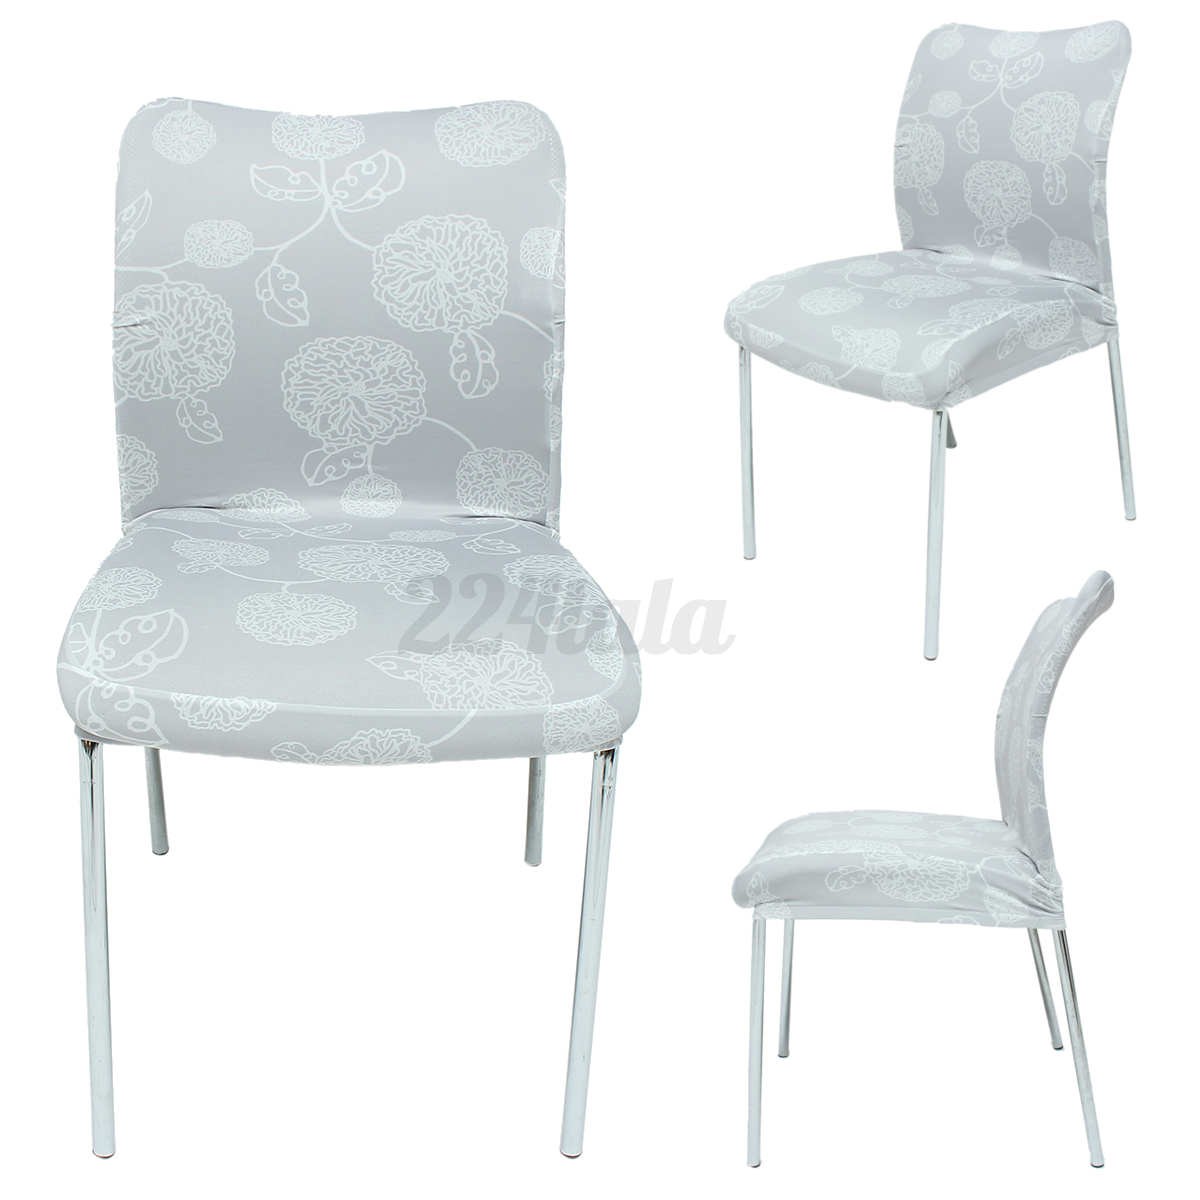 GRAY UNIVERSAL CHAIR Seat Cover High Elastic Chair Cover